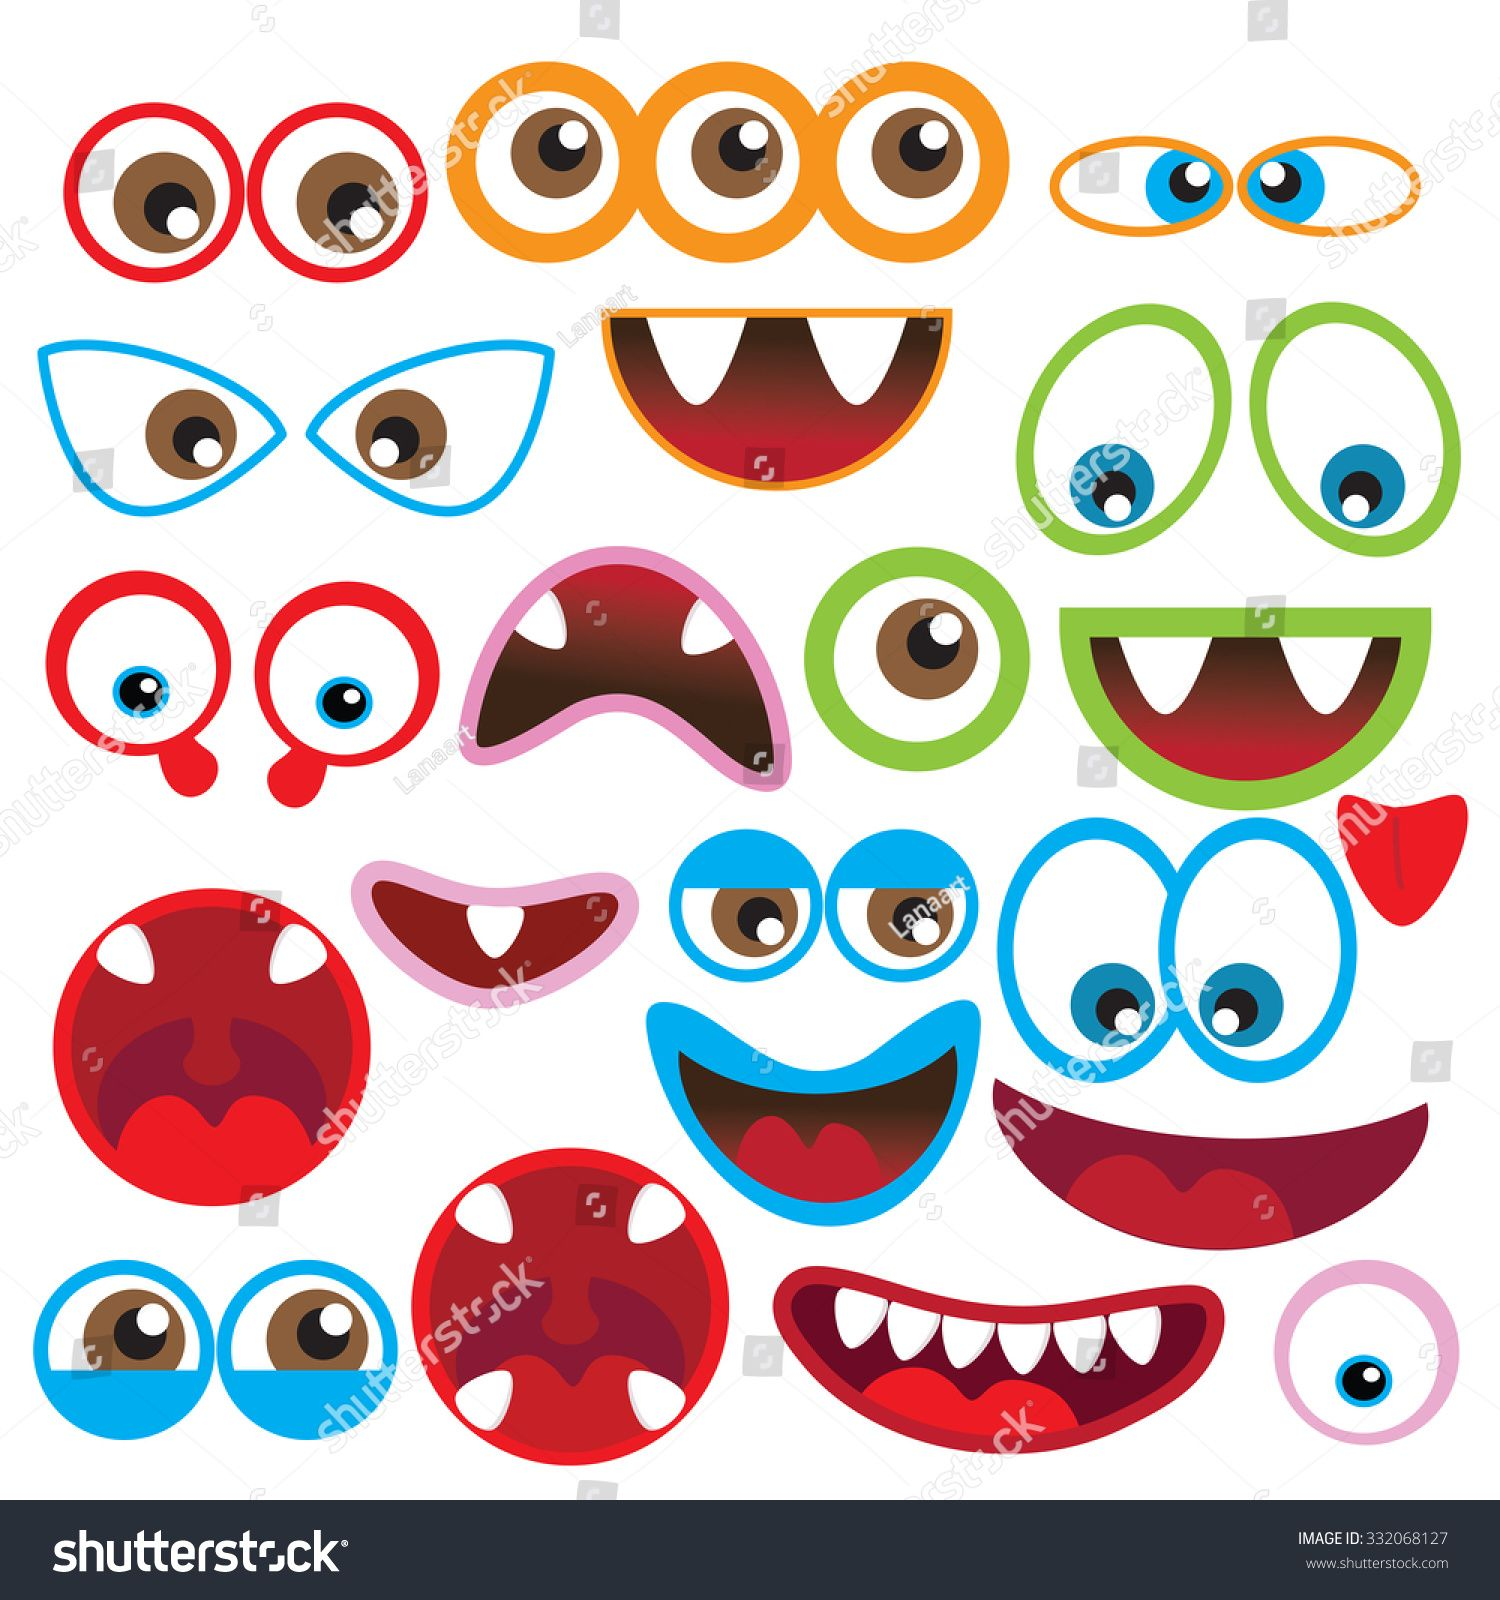 Cute Monsters Eyes And Mouth Vector Illustration